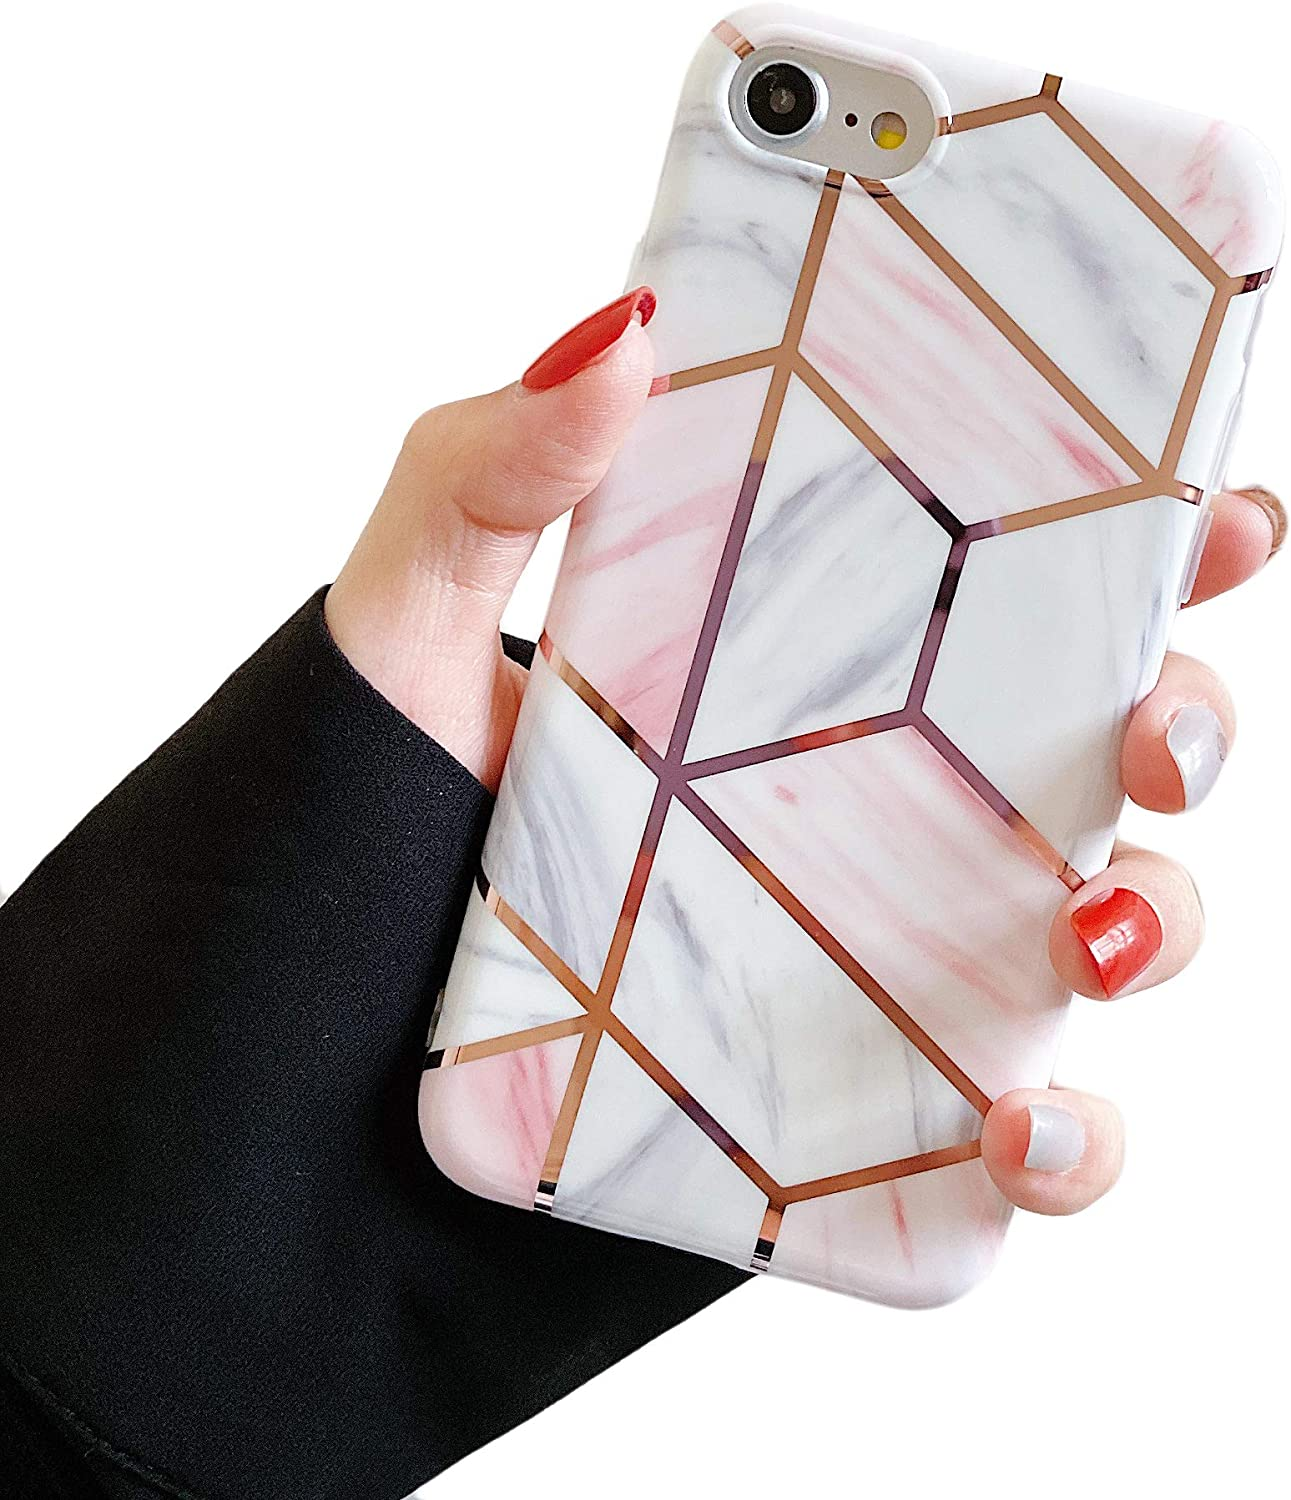 Cocomii Geometric Marble iPhone 6S/6 Case, Slim Thin Glossy Soft Flexible TPU Silicone Rubber Gel Shiny Reflective Streaks Fashion Bumper Cover Compatible with Apple iPhone 6S/6 (Light Pink)